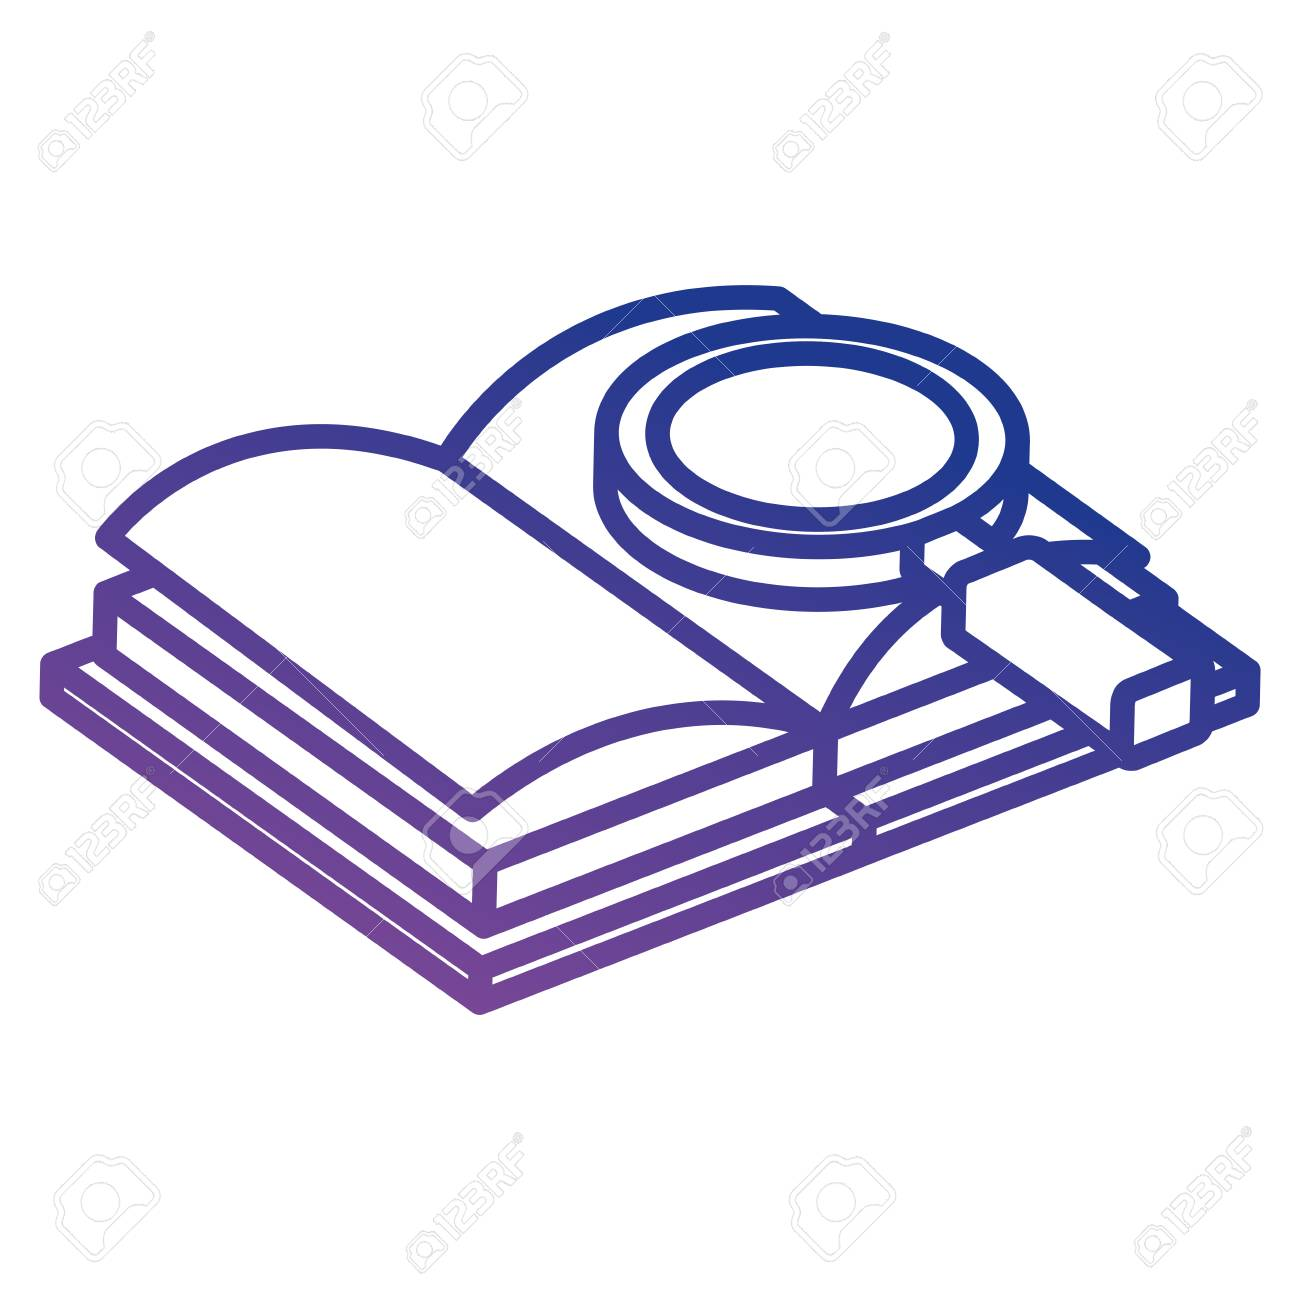 text book with magnifying glass vector illustration design - 110542669